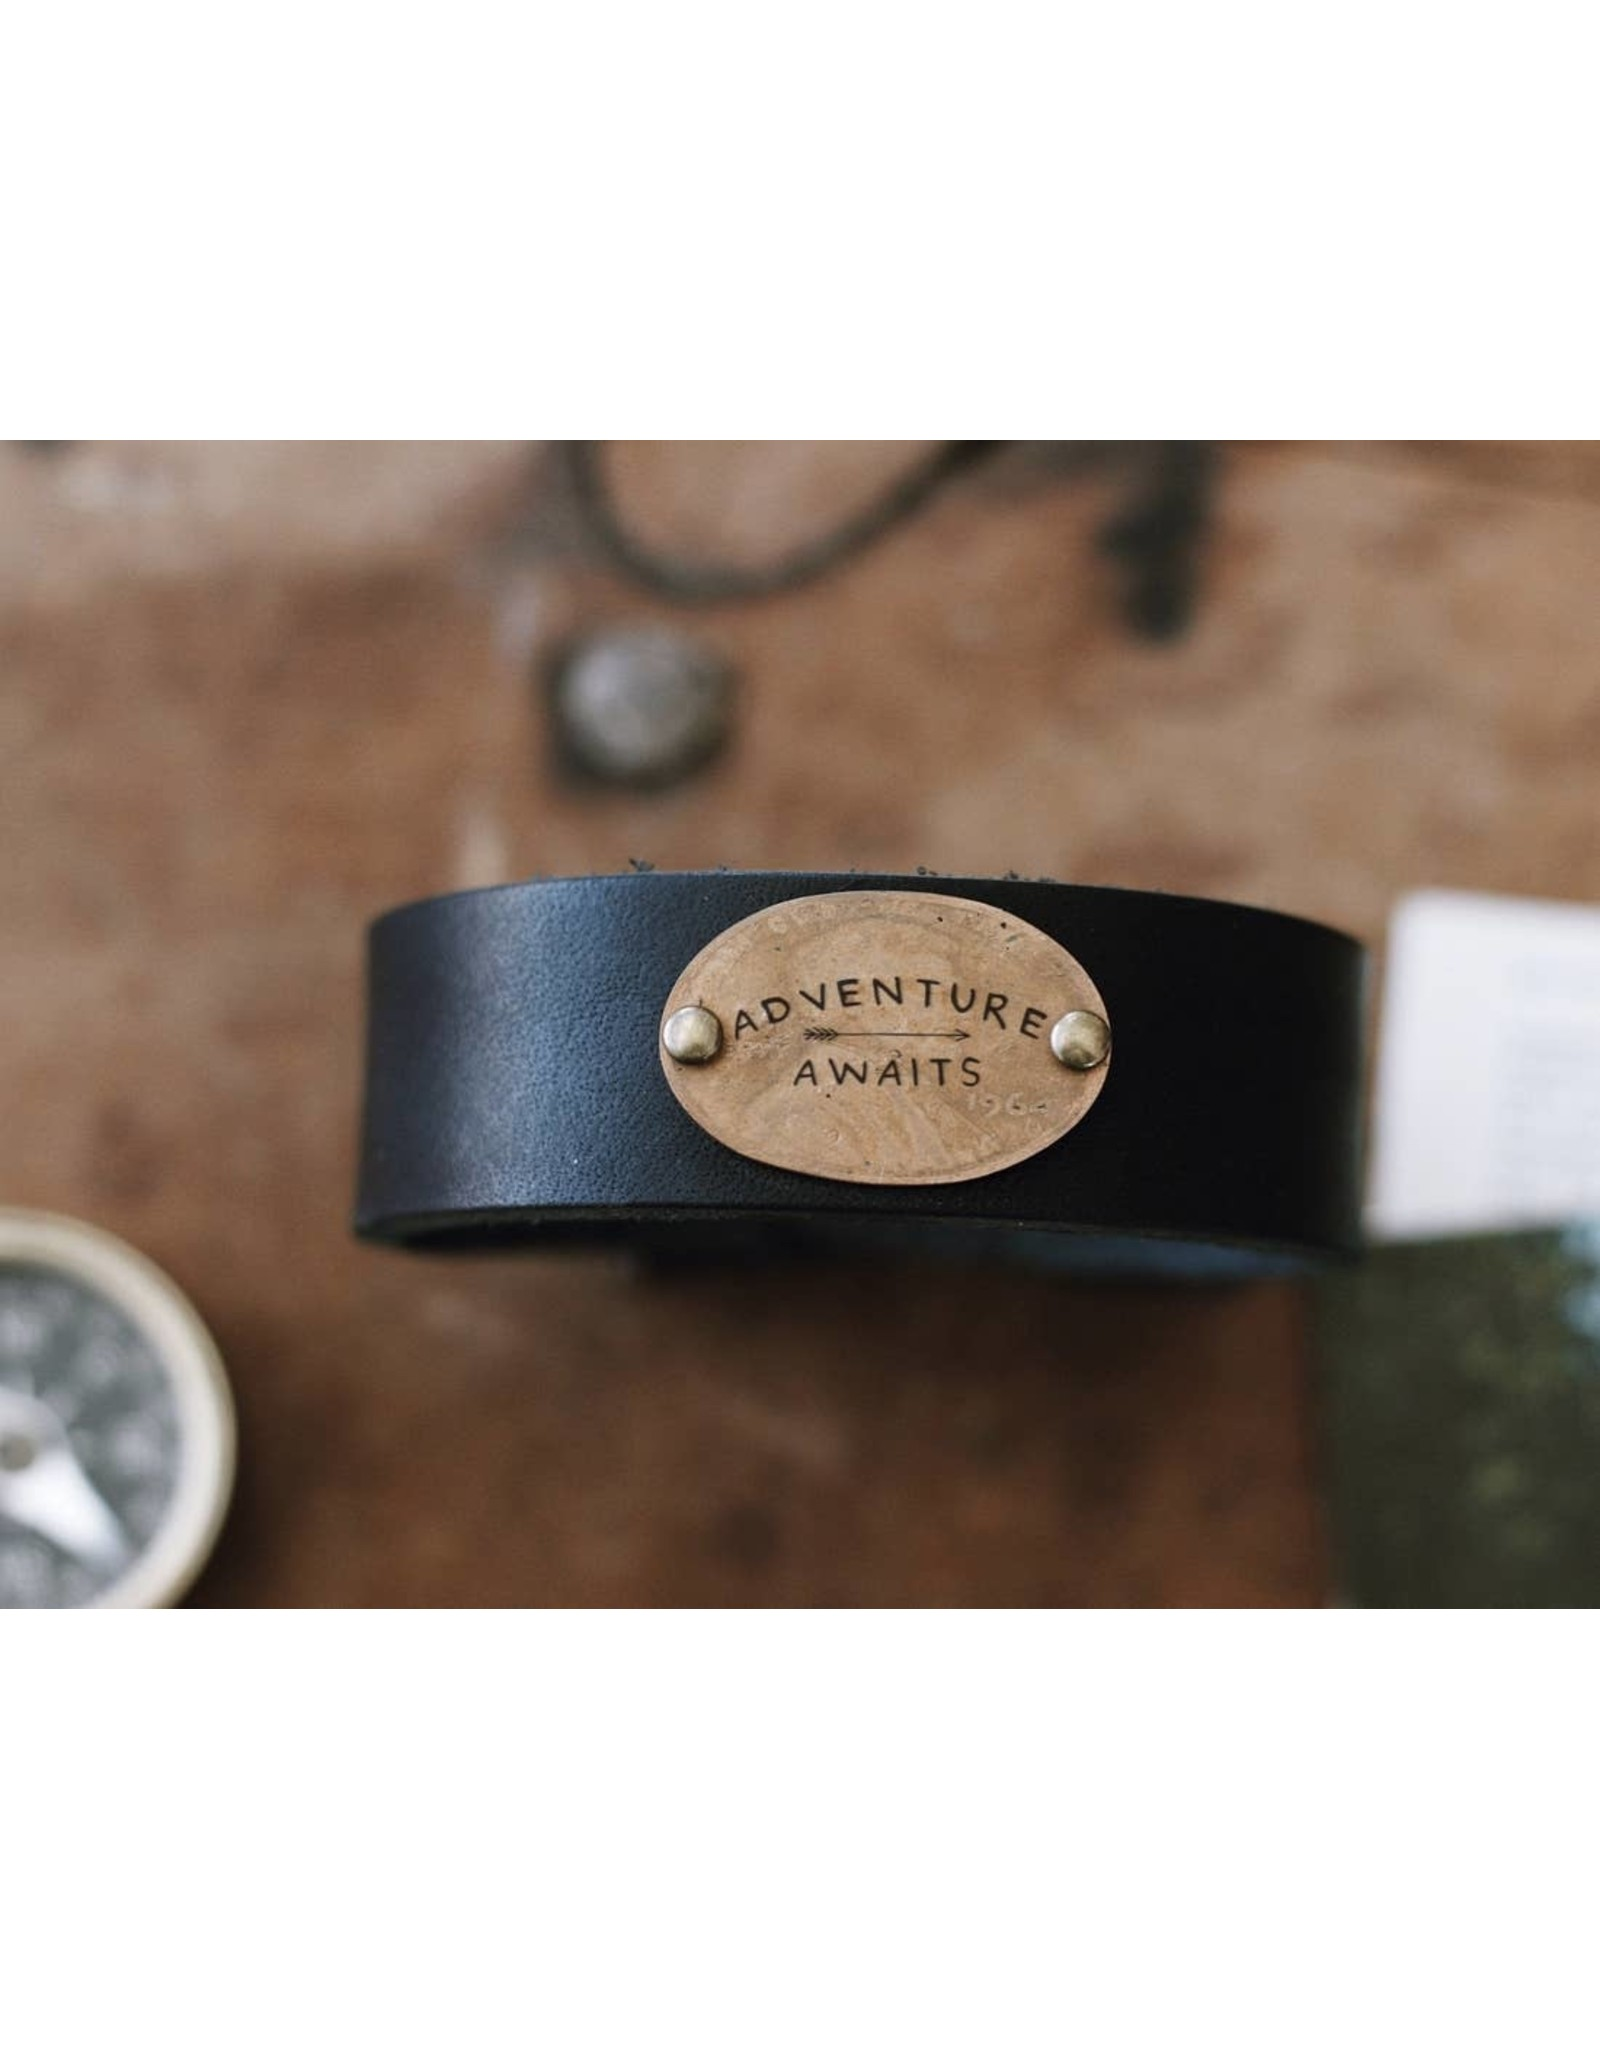 Traveling Penny Adventure Awaits Leather Cuff Bracelet